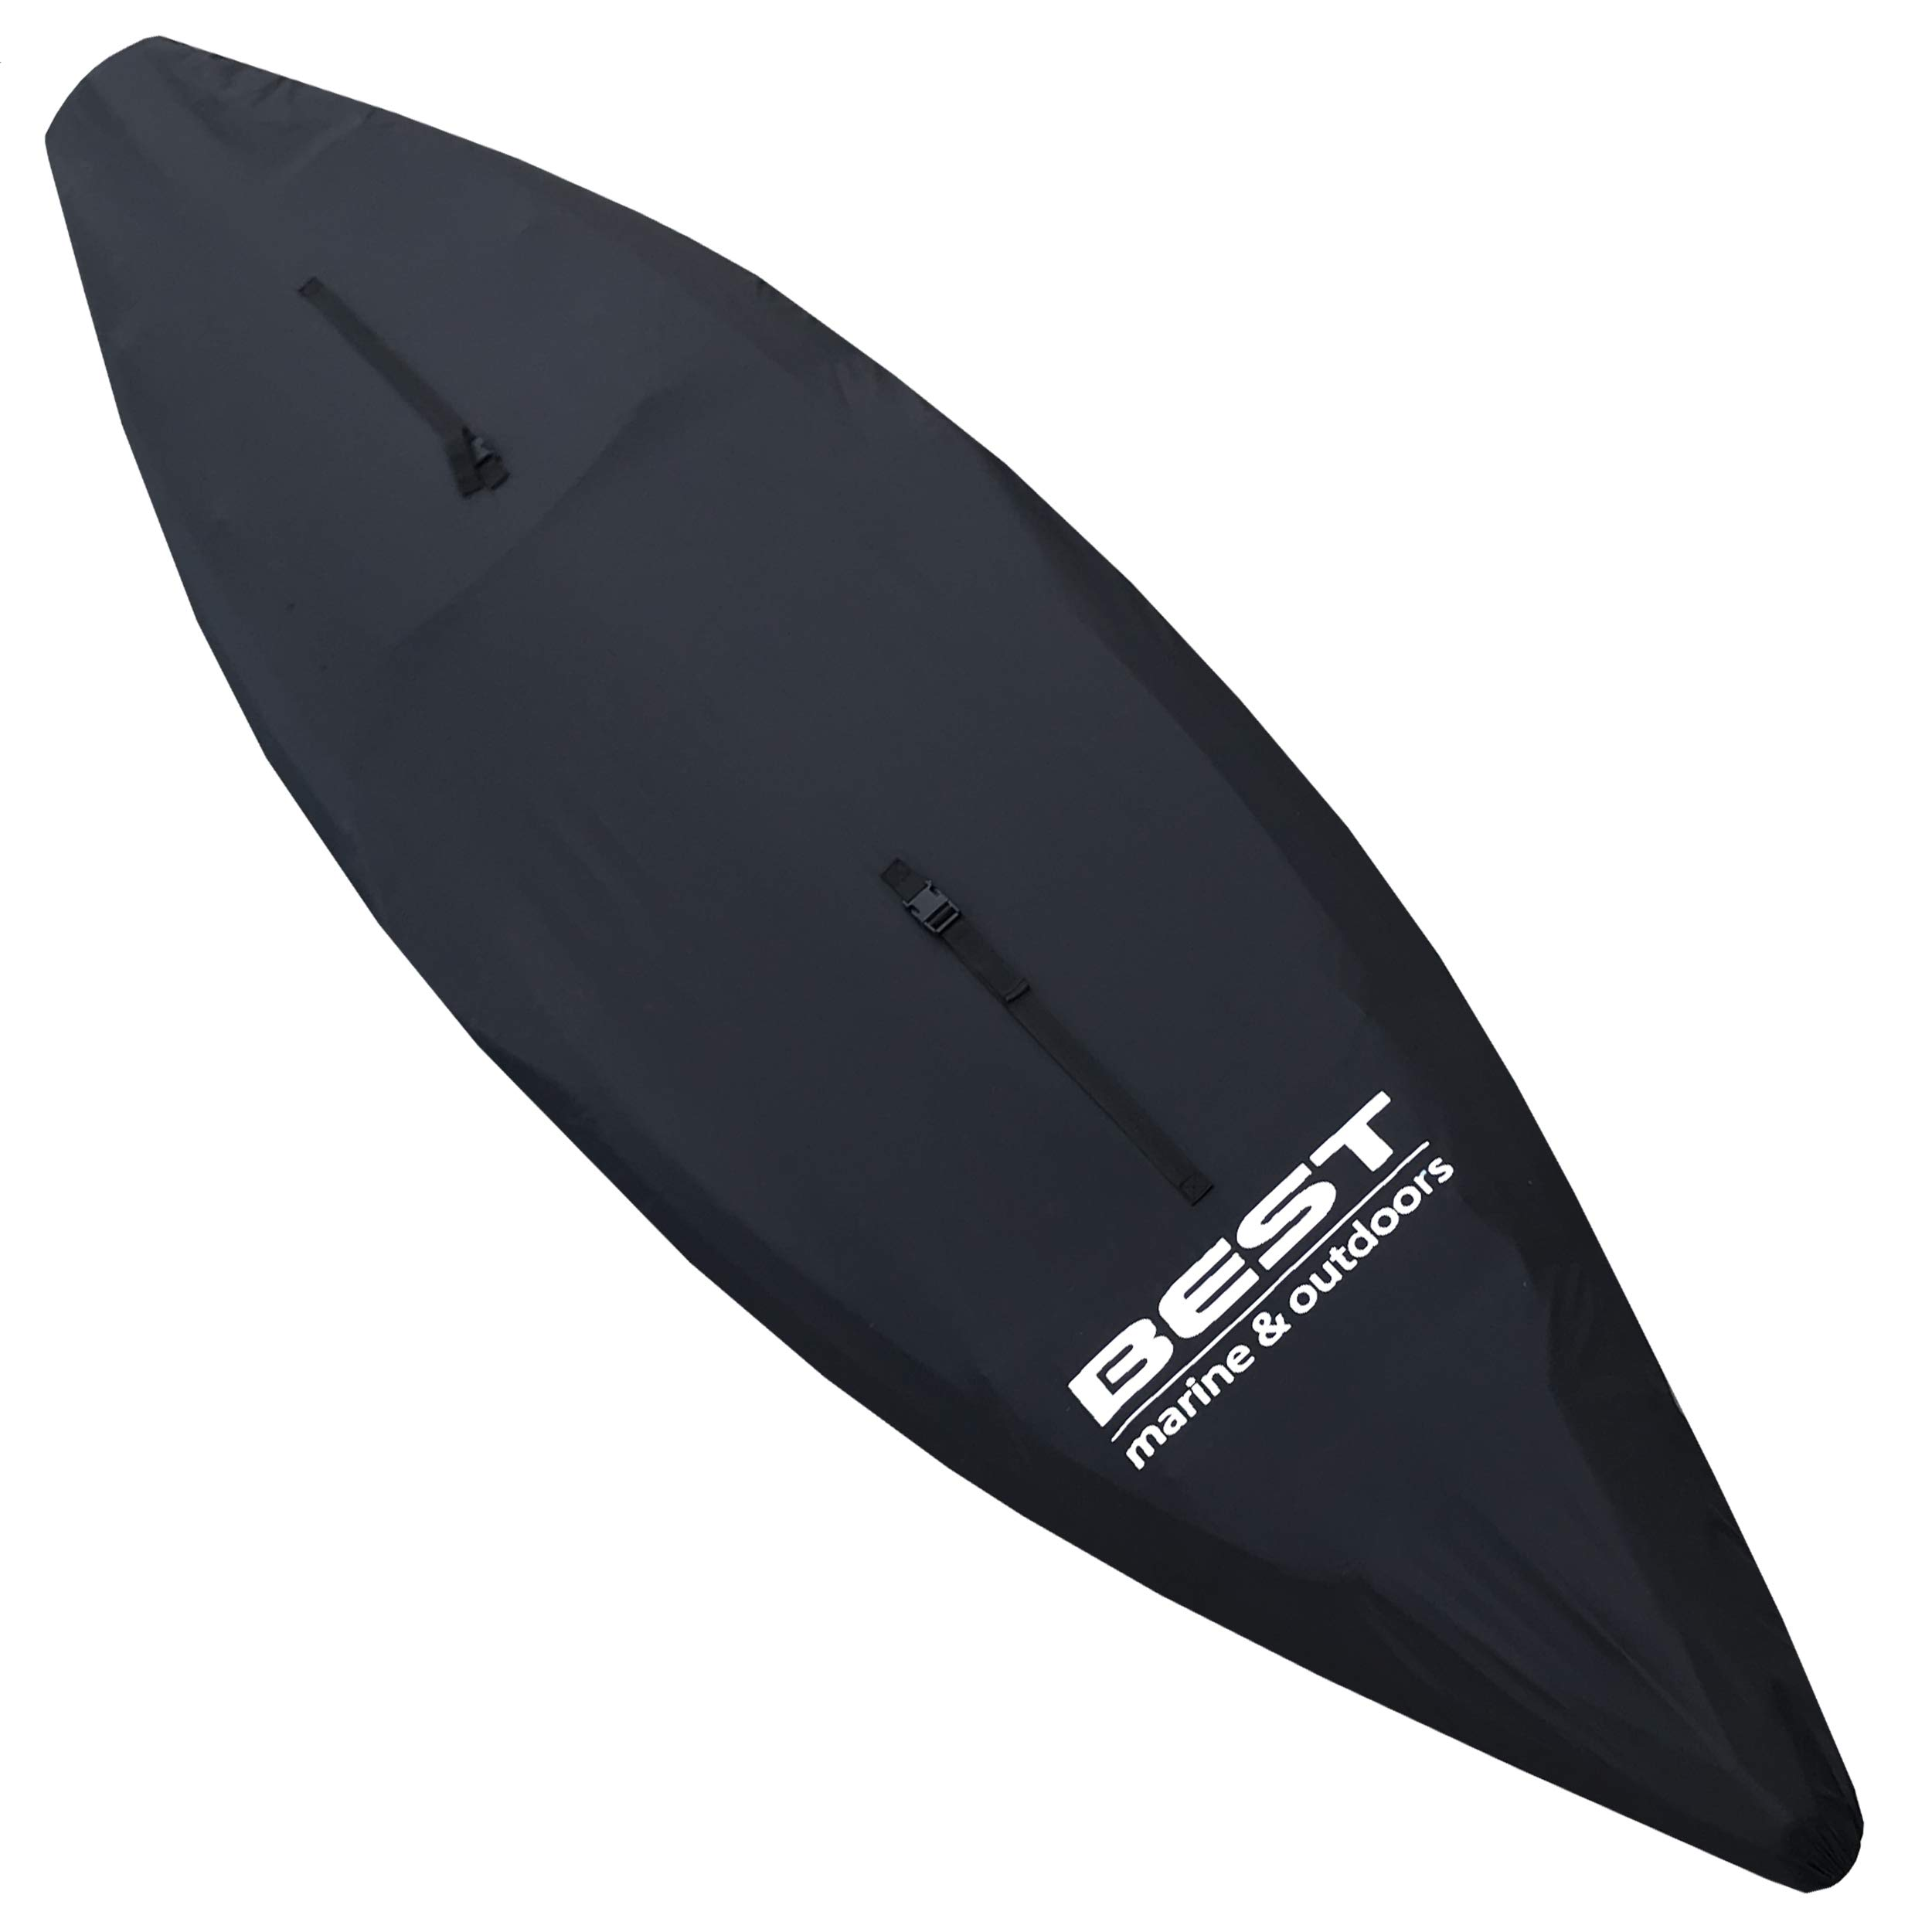 Best Marine Kayak Cover (S) Accessories for Indoor/Outdoor Storage. Durable Waterproof Covers That Protect Your Kayaks and Cockpit from UV Rays, Debris and Water. Also Works with SUP Paddle Boards by BEST Marine and Outdoors